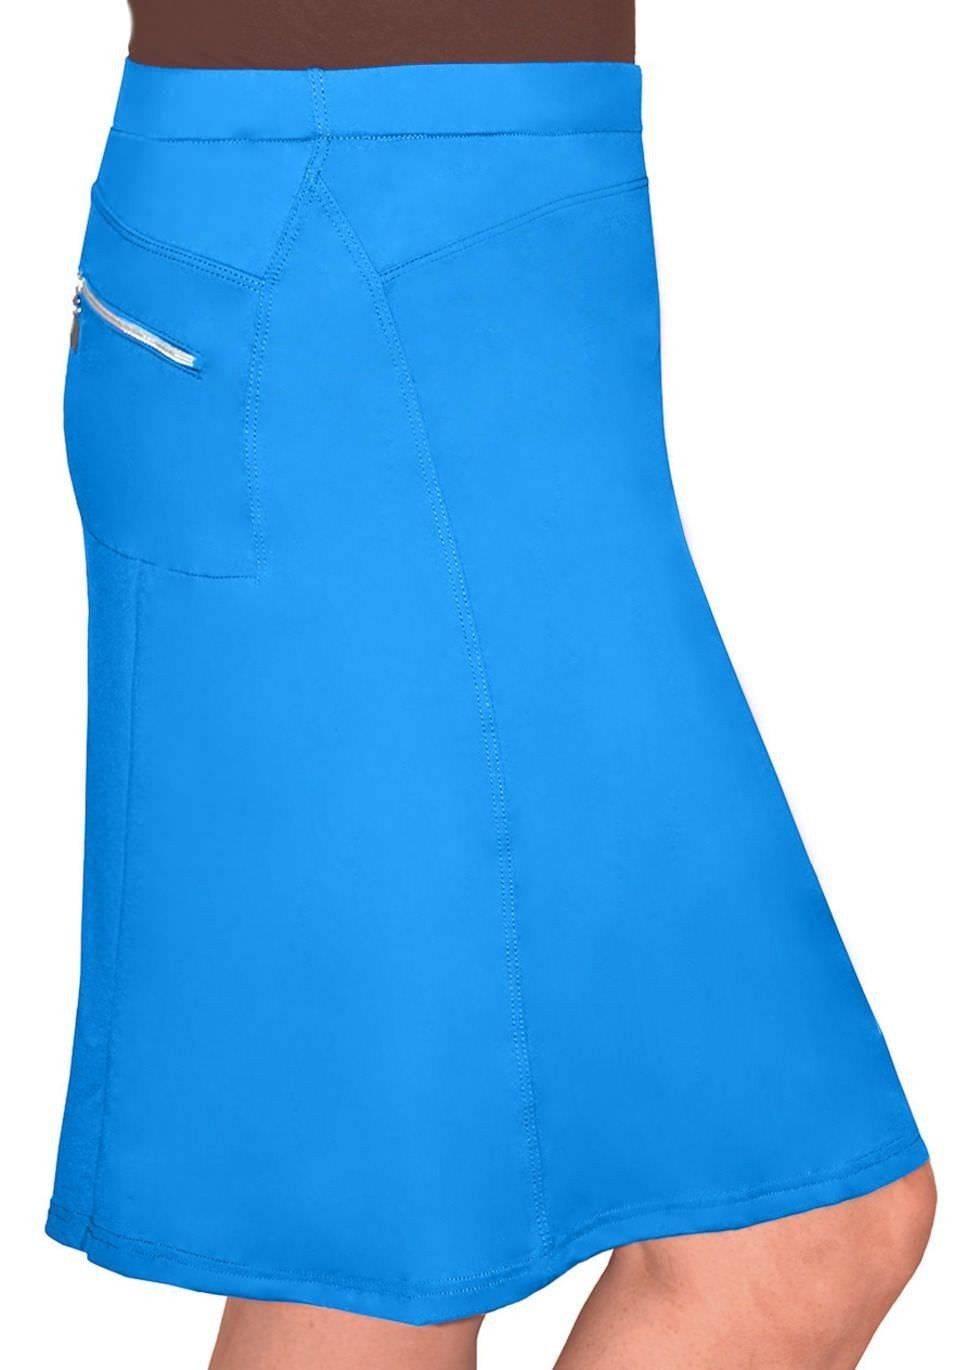 Directional Yet Demure Clothing For The Cool Modern Woman: Blue Turquoise Running/Swim Skirt With Spandex Shorts